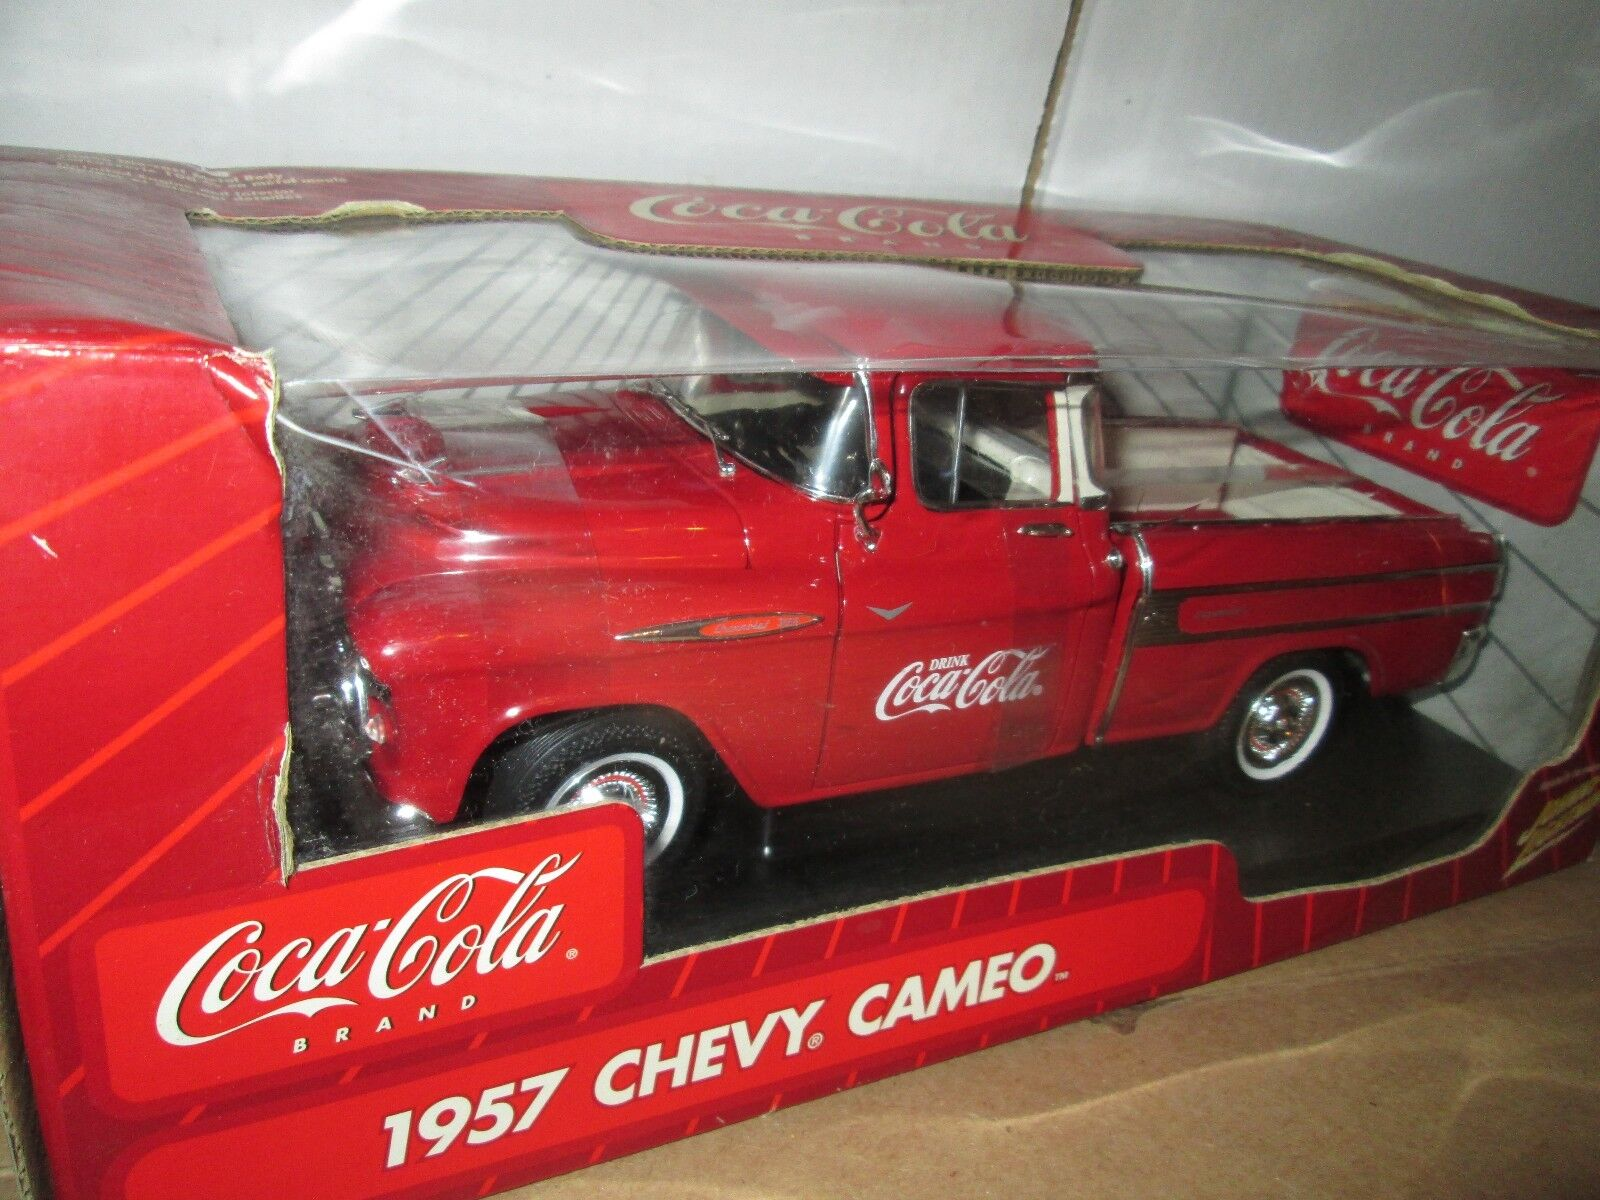 1955 Chevy Cameo Chevy Coca-Cola Coke Jl Johnny Lightning 1 18 Camioneta